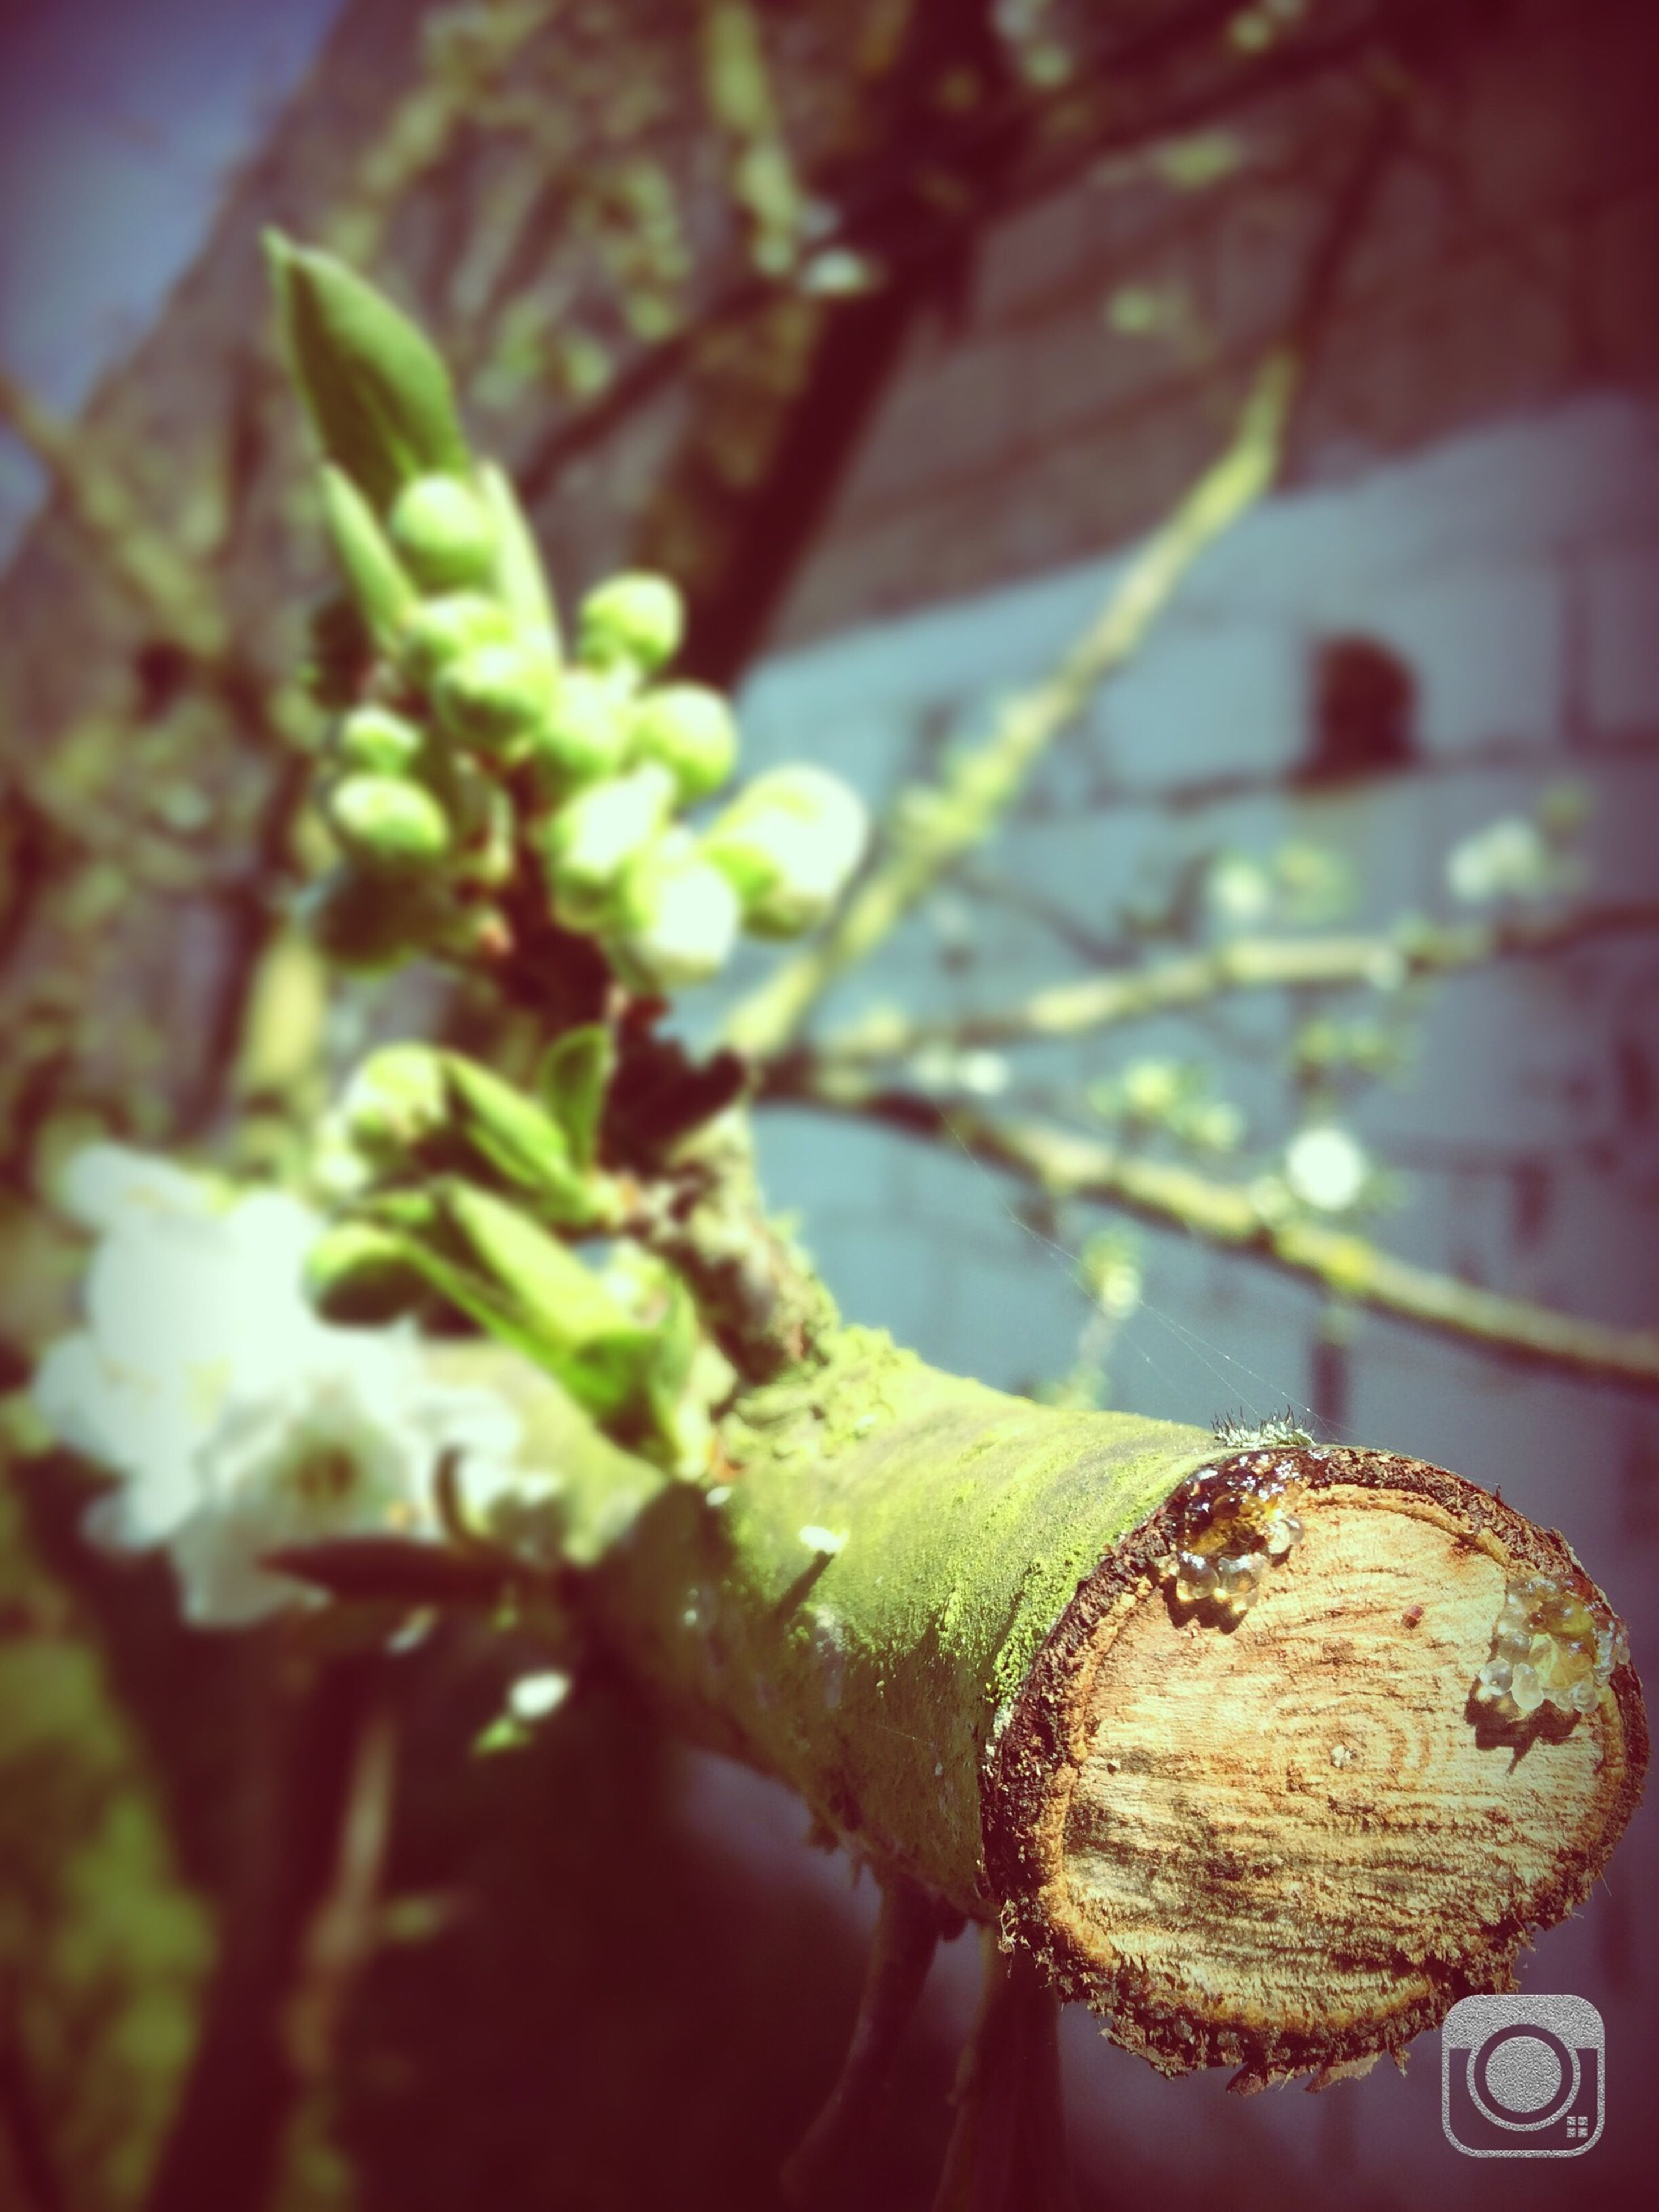 close-up, focus on foreground, leaf, green color, selective focus, plant, indoors, no people, potted plant, day, one animal, growth, nature, freshness, sunlight, animal themes, built structure, branch, wall - building feature